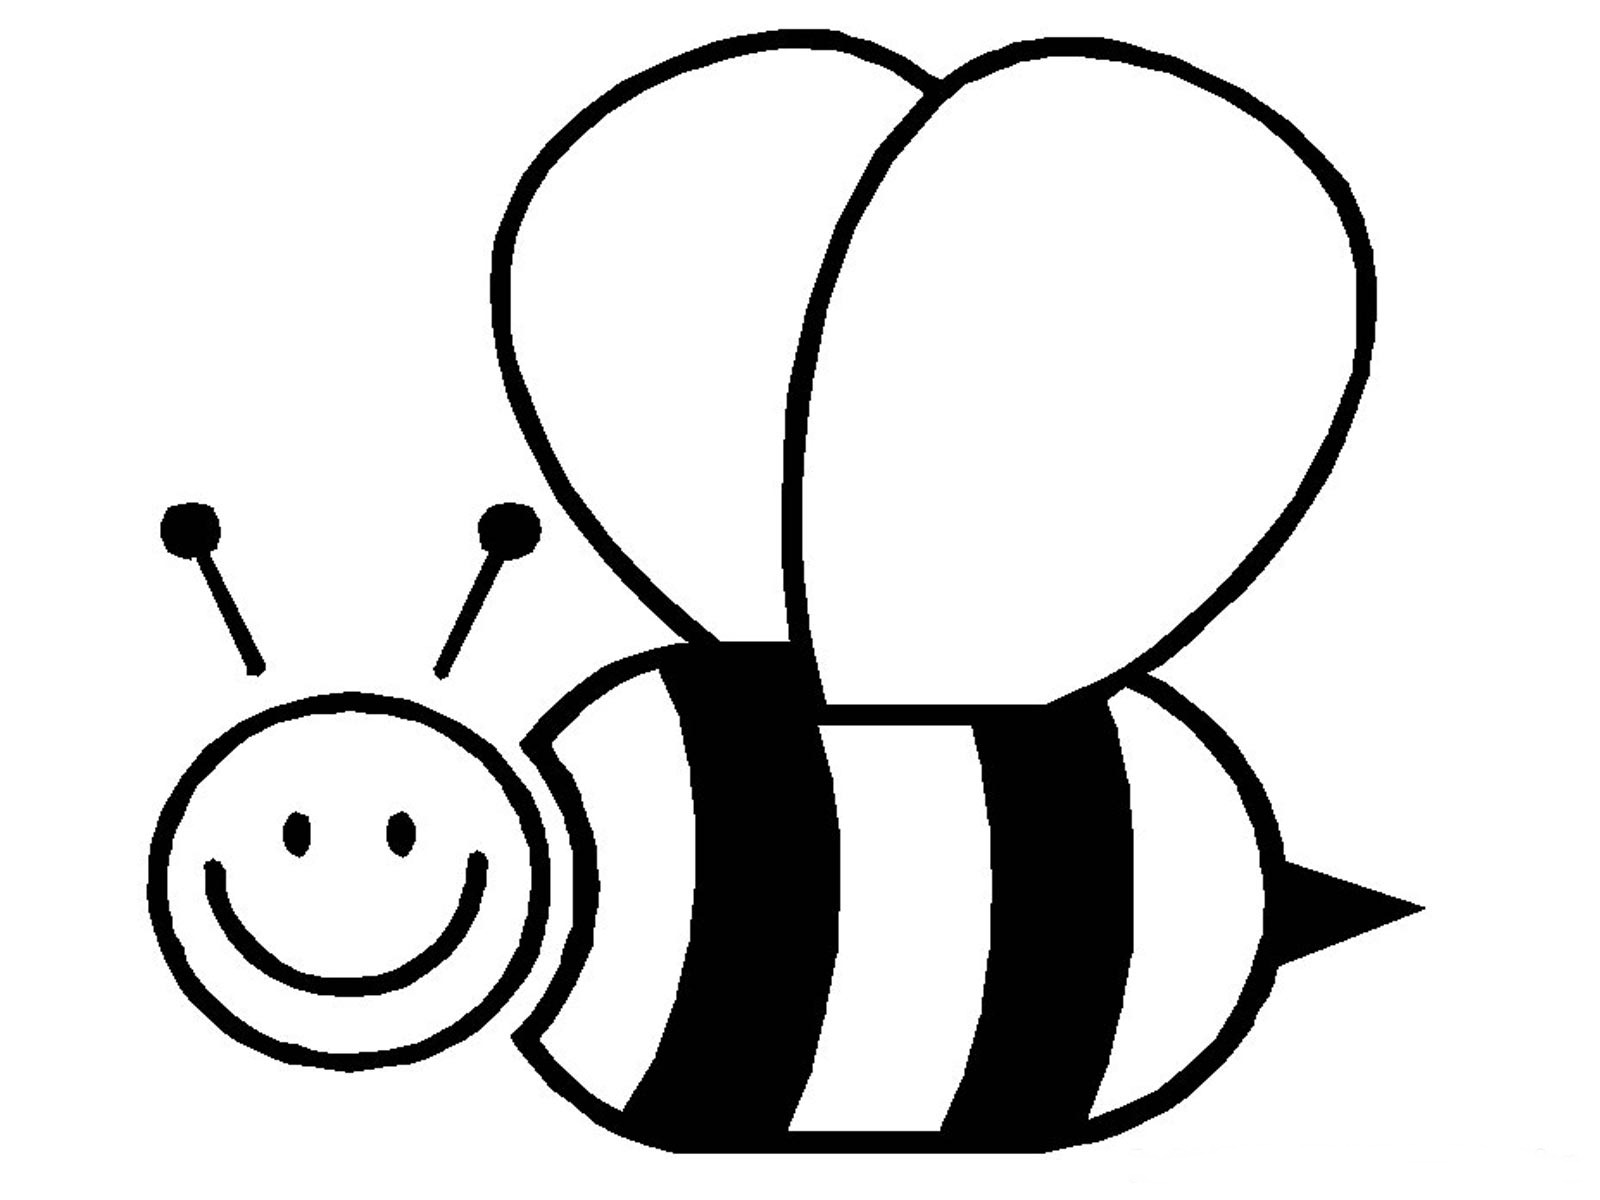 Bee clipart easy. Honey black and white